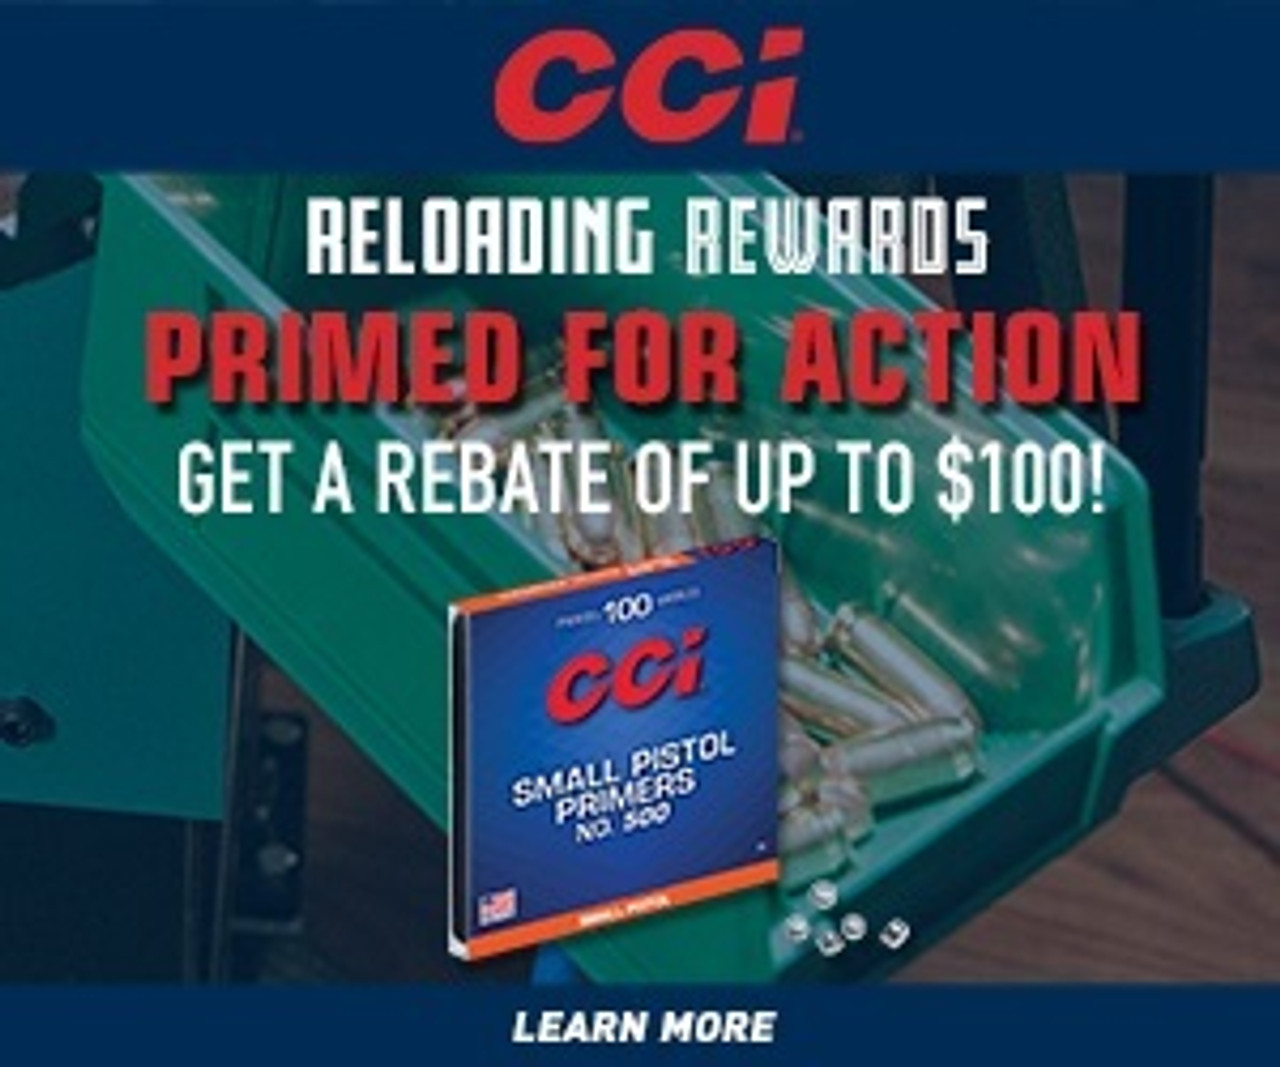 CCI Primed For Action Rebate